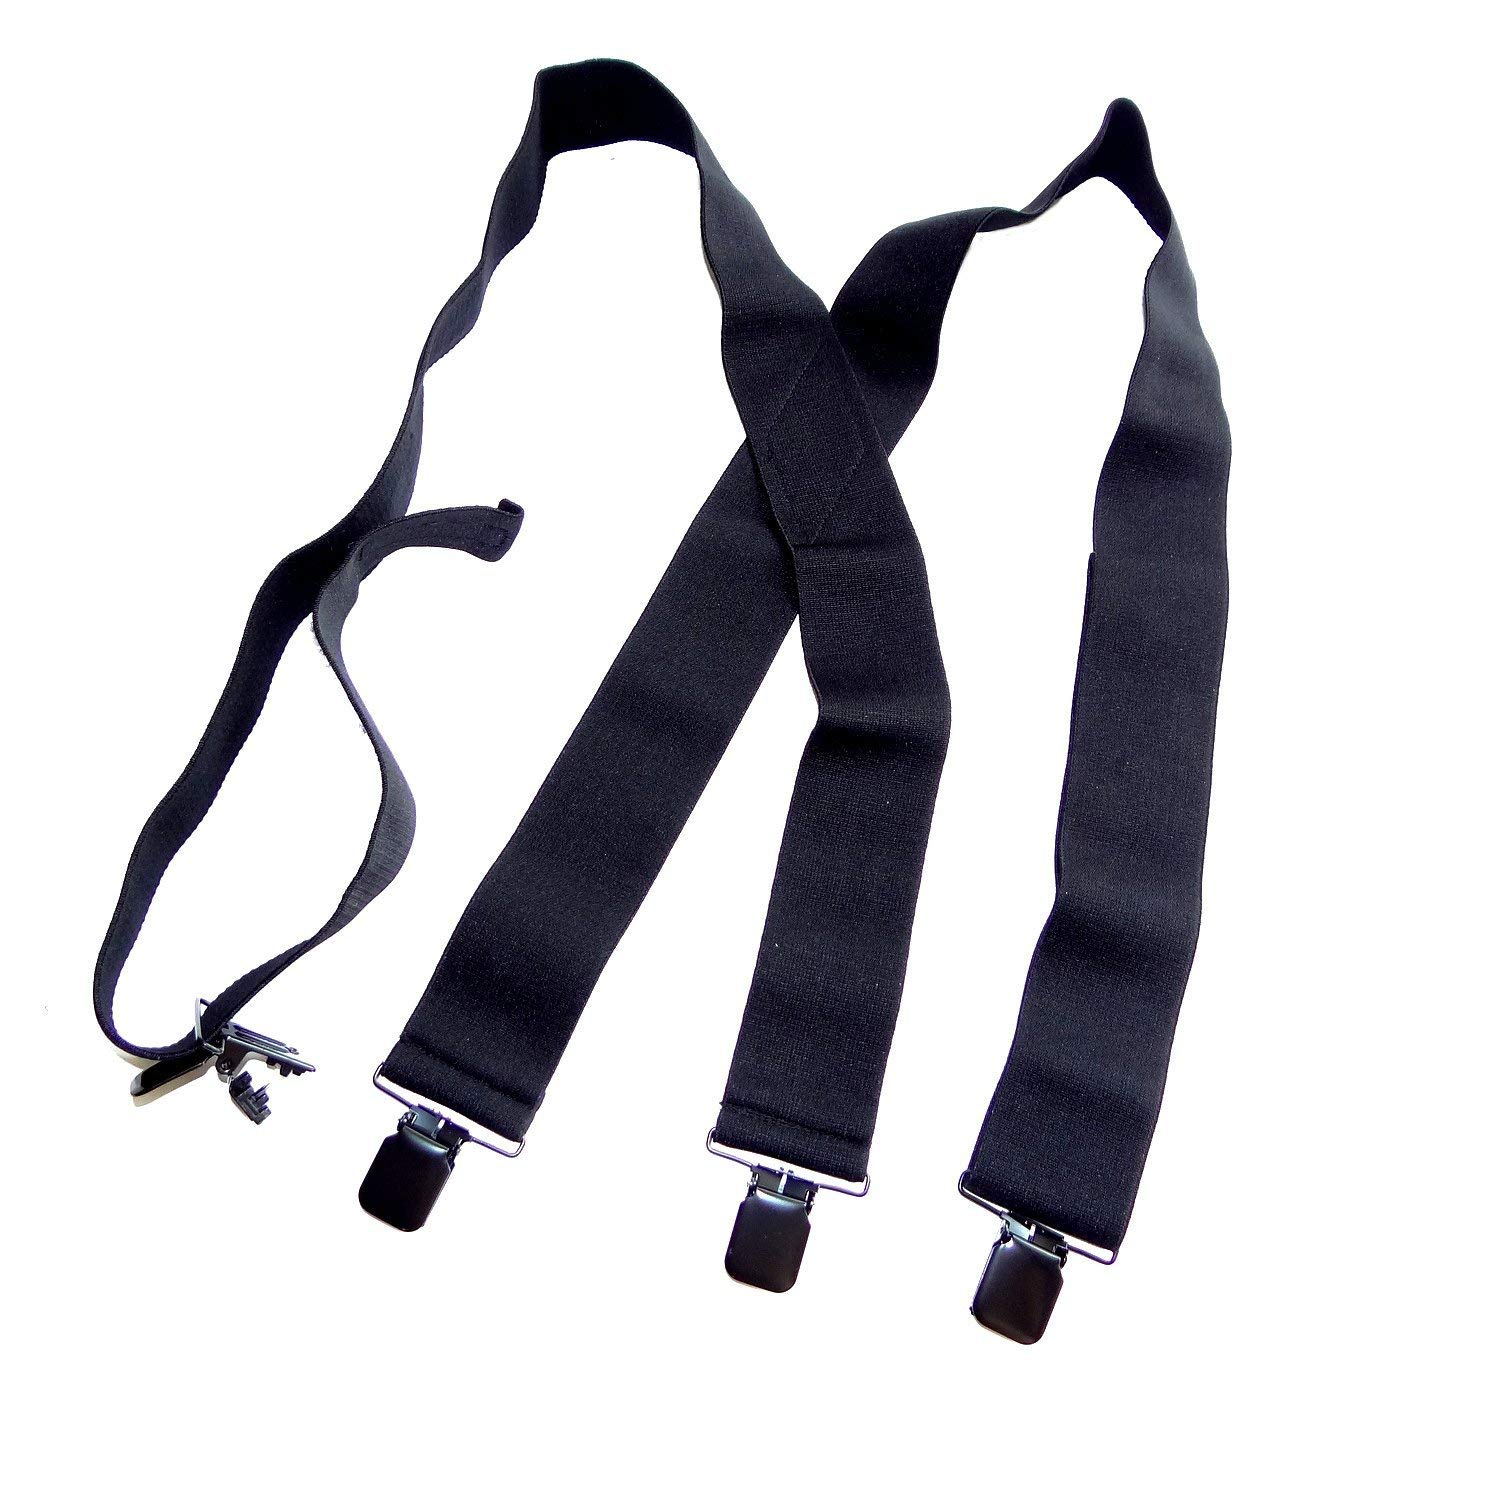 HoldUp 2'' Wide Black XL Undergarment Suspenders worn under your shirt with patented no-slip clips